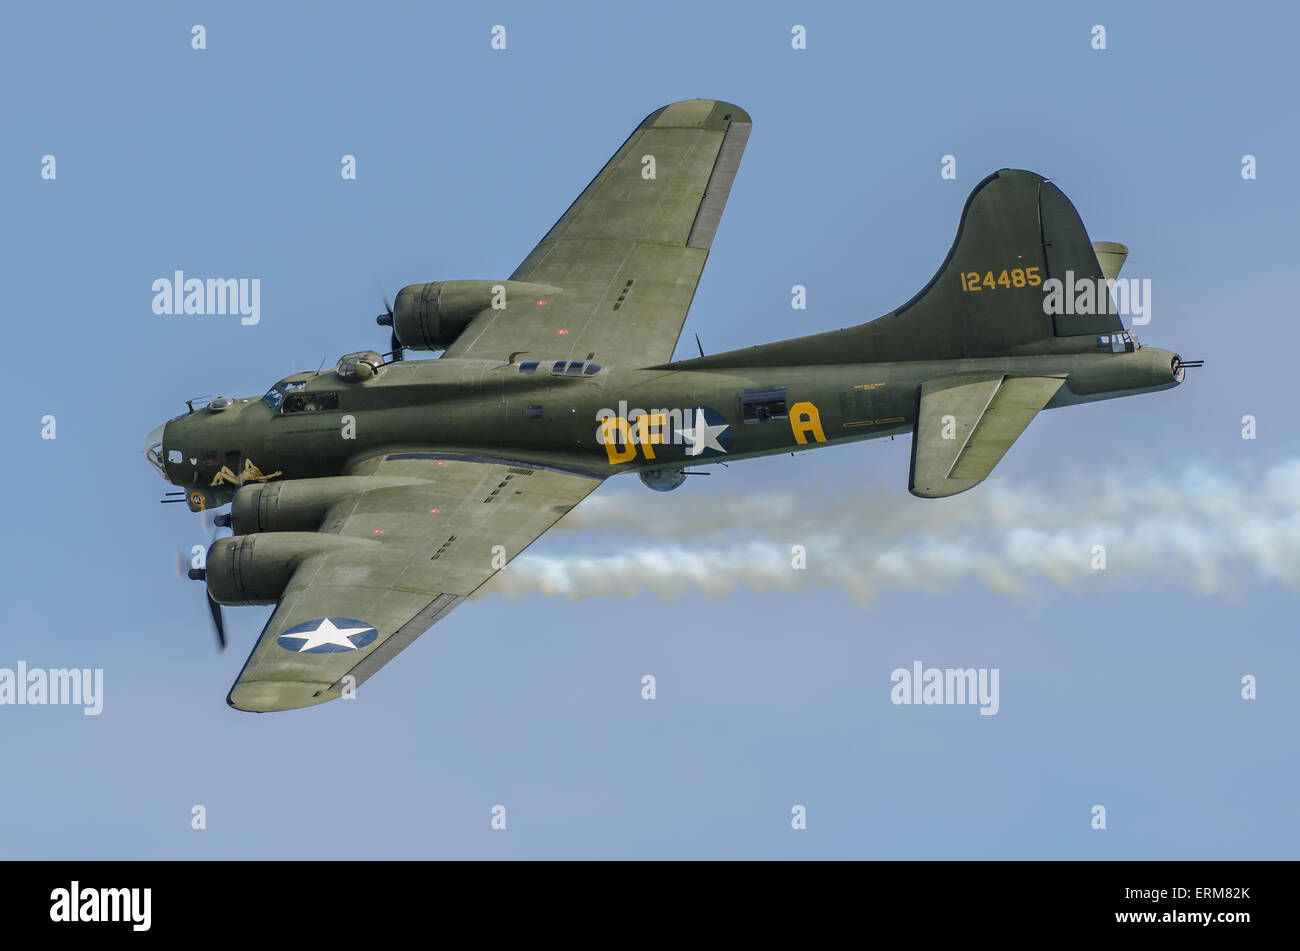 sally-b-is-the-name-of-an-airworthy-1945-built-boeing-b-17g-flying-ERM82K.jpg